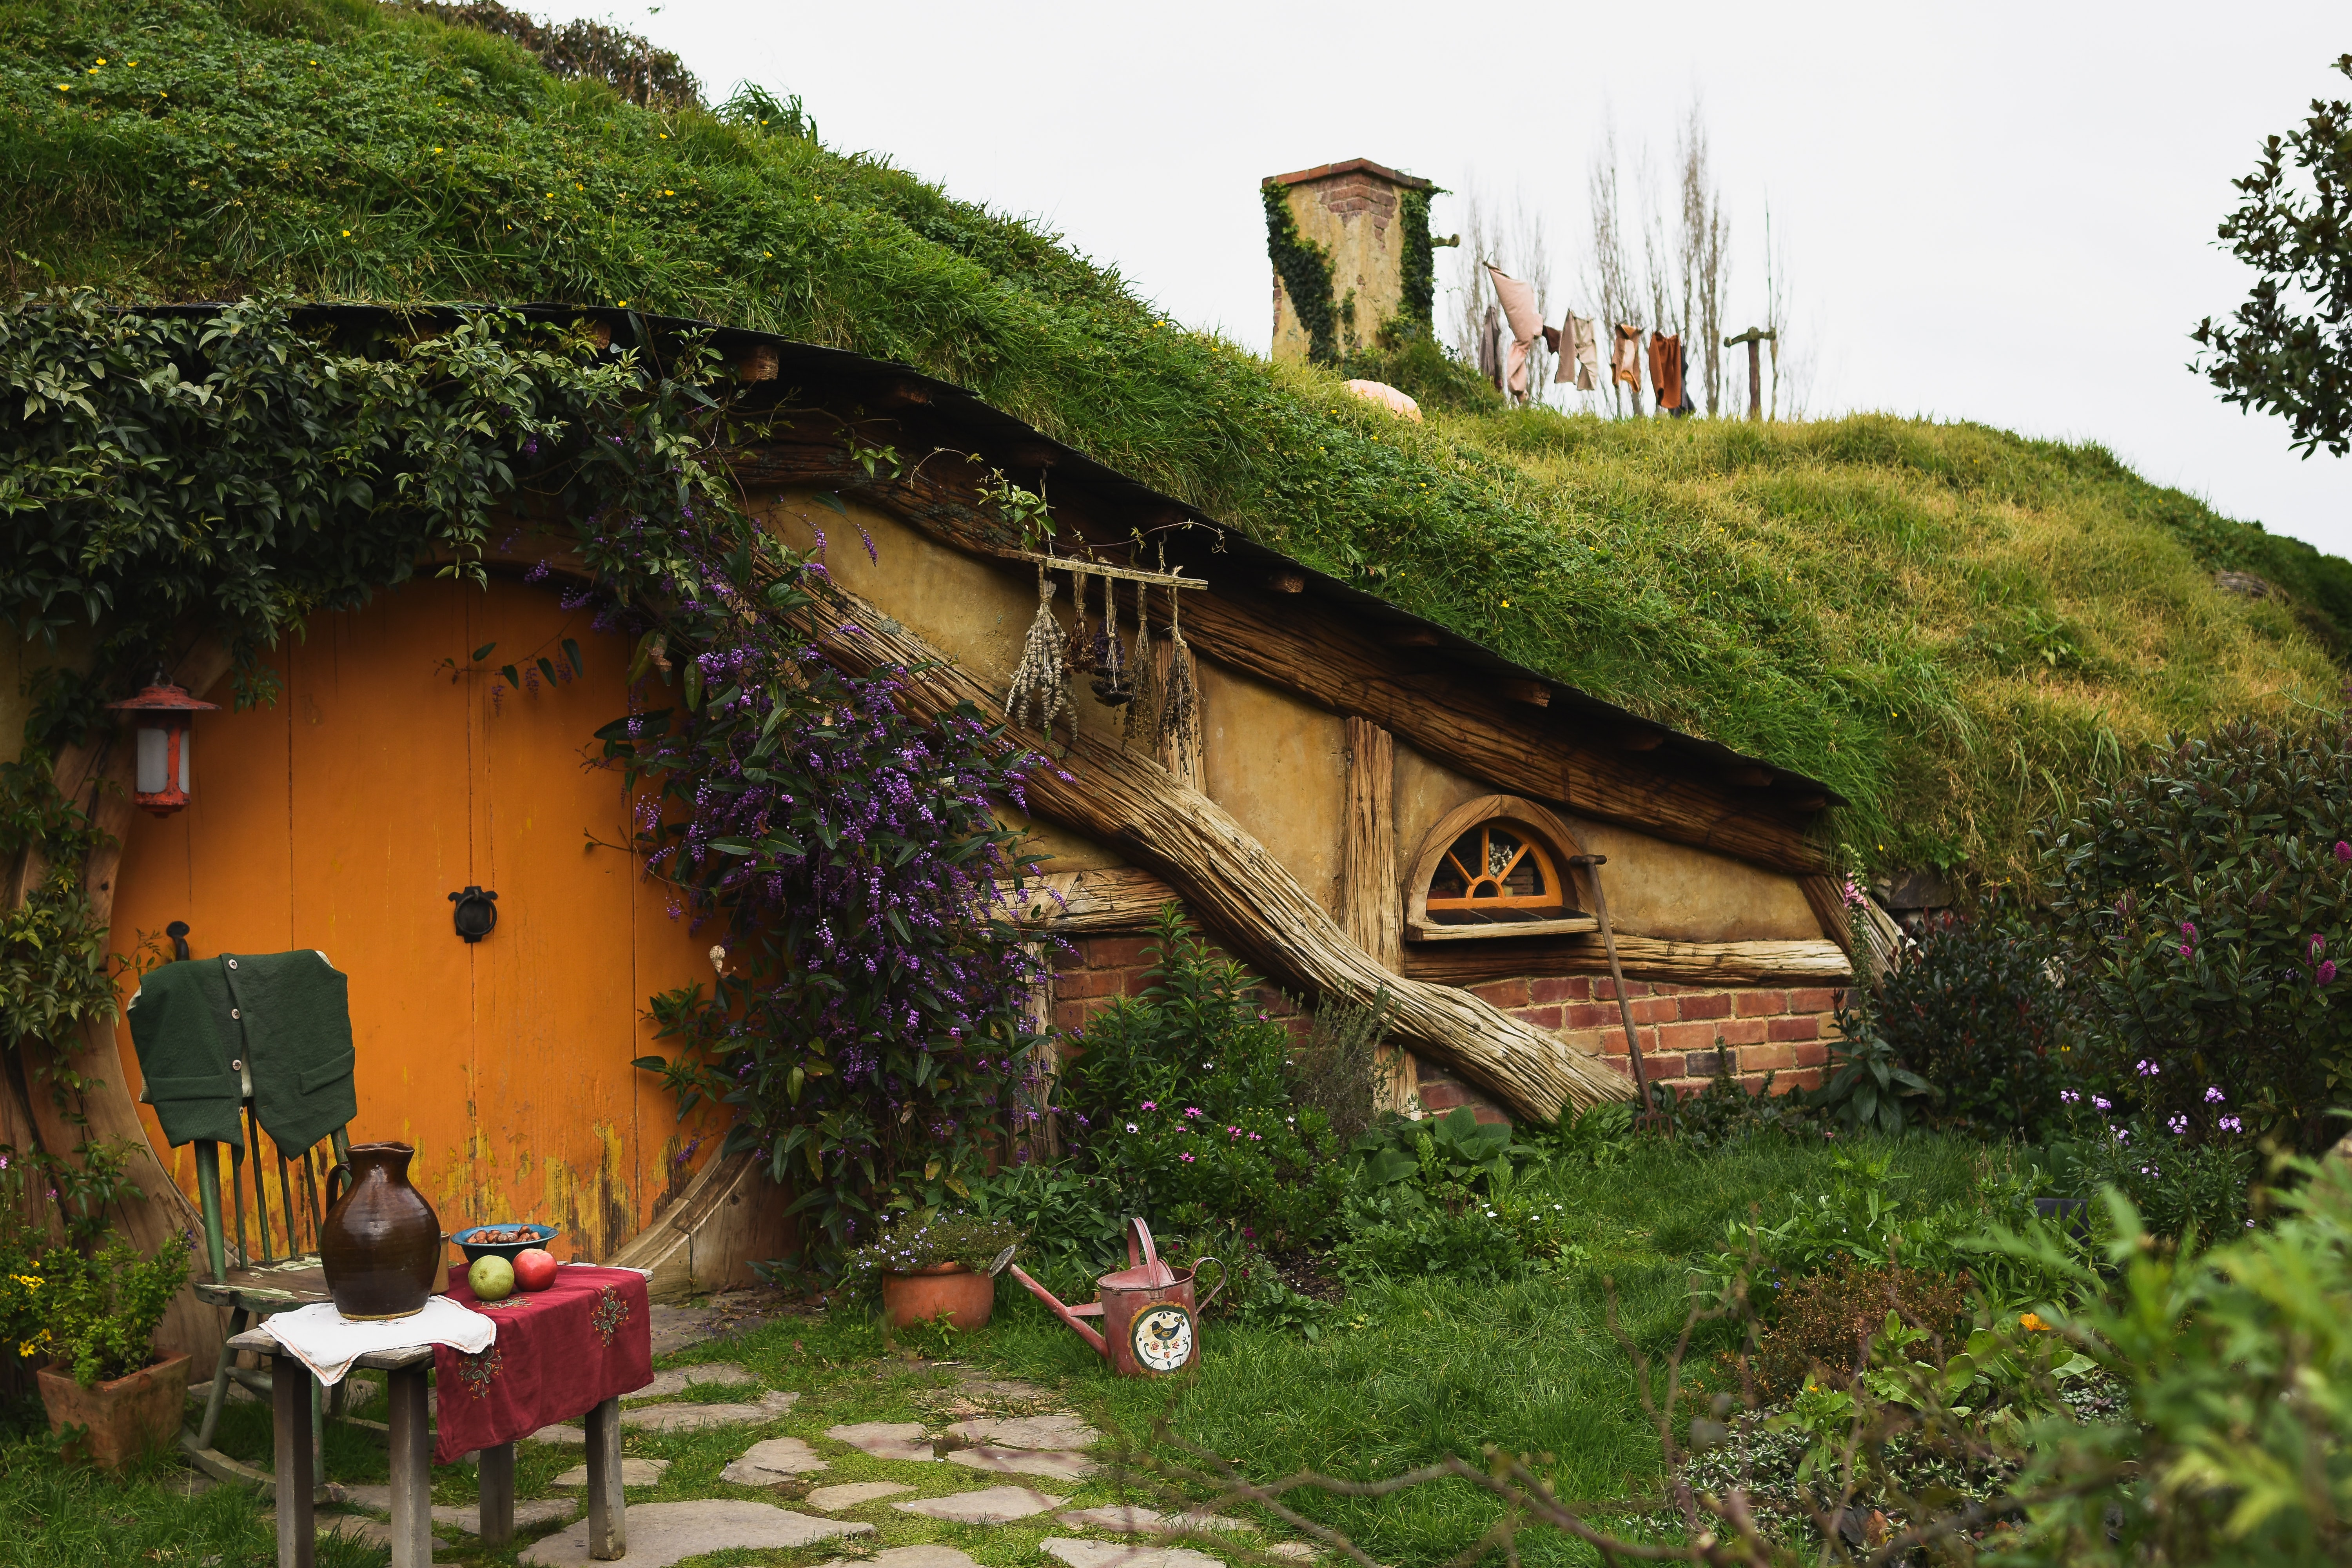 Are ecovillages a viable alternative model?